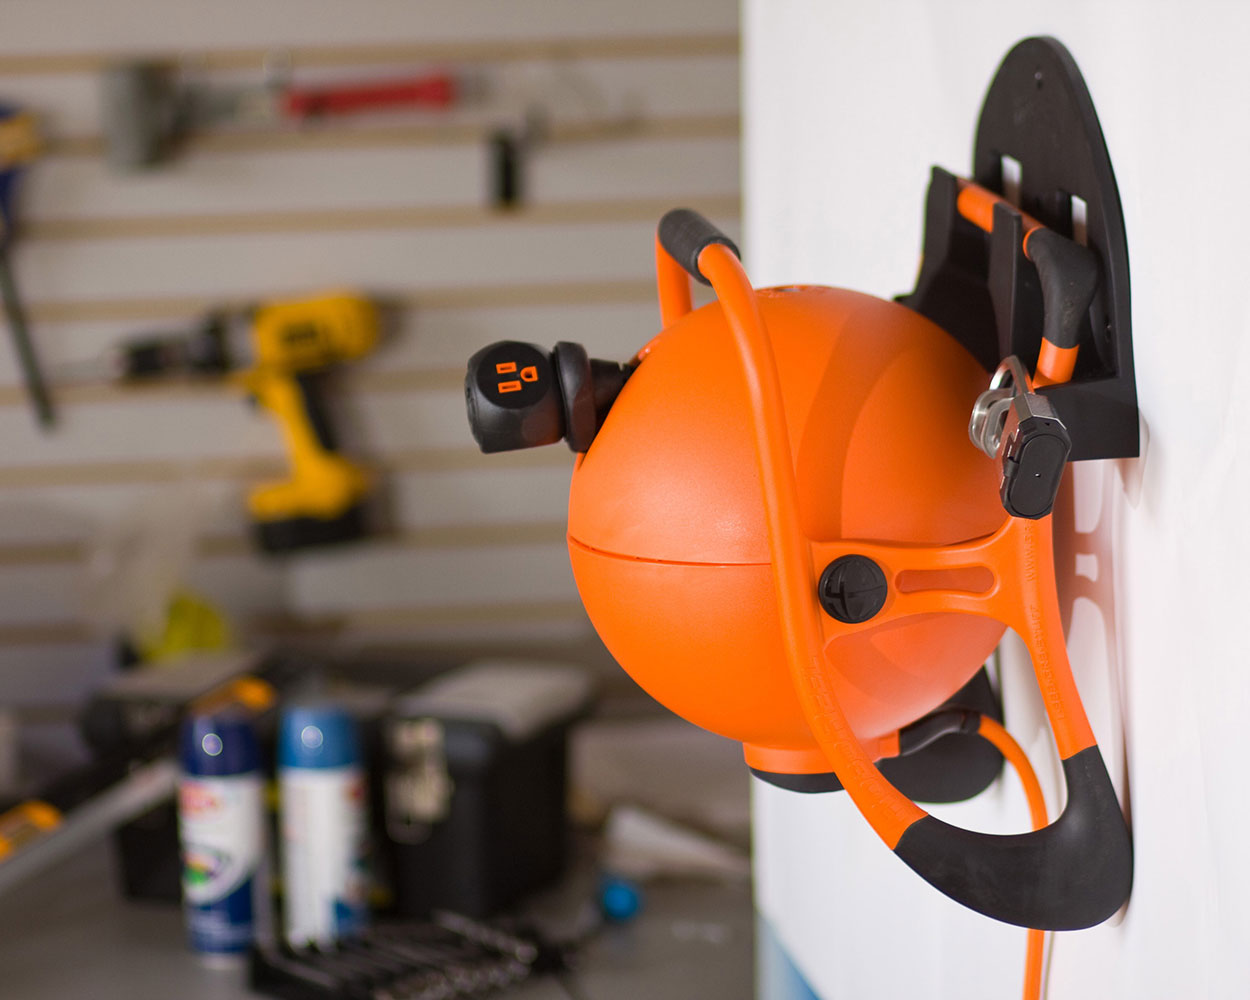 RoboReel   Worldu0027s First Portable, Motor Driven Extension Cord Reel